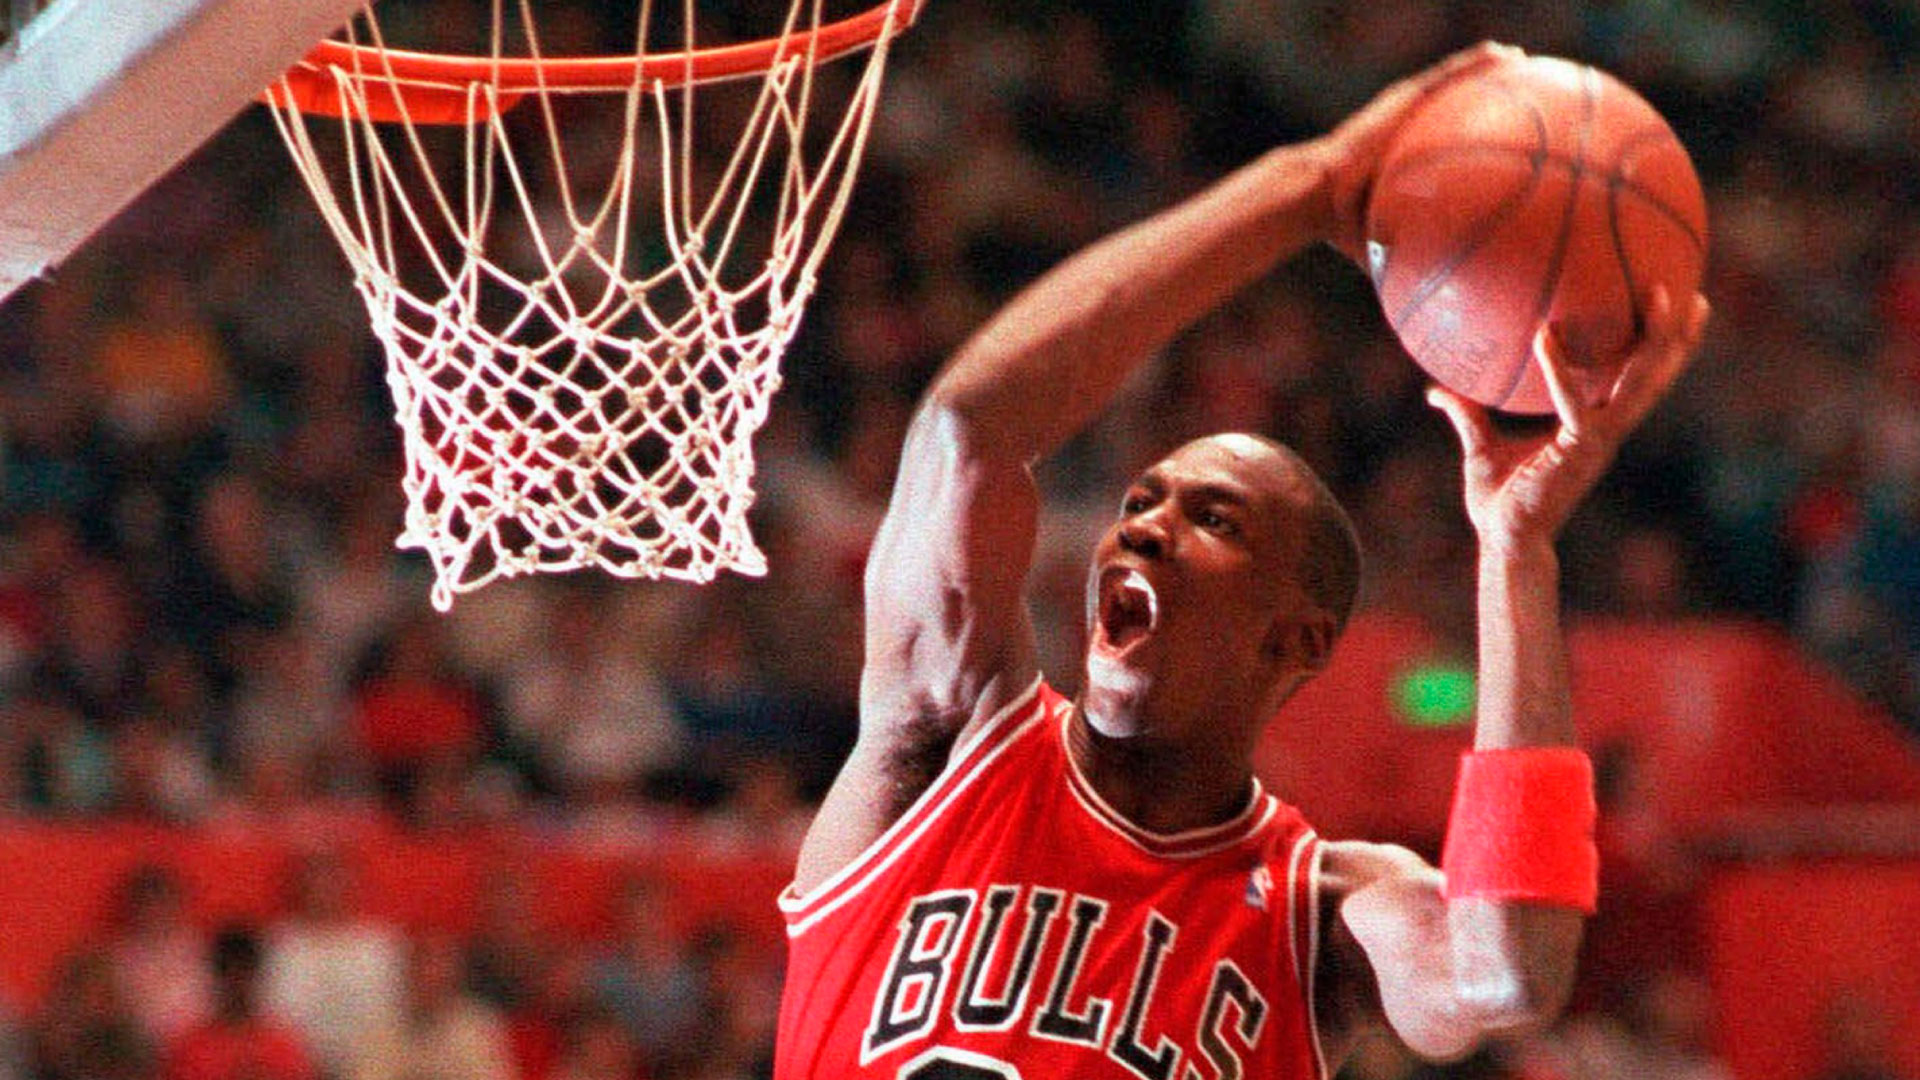 Sam Smith (escritor) dice que Michael Jordan mintió en The Last Dance